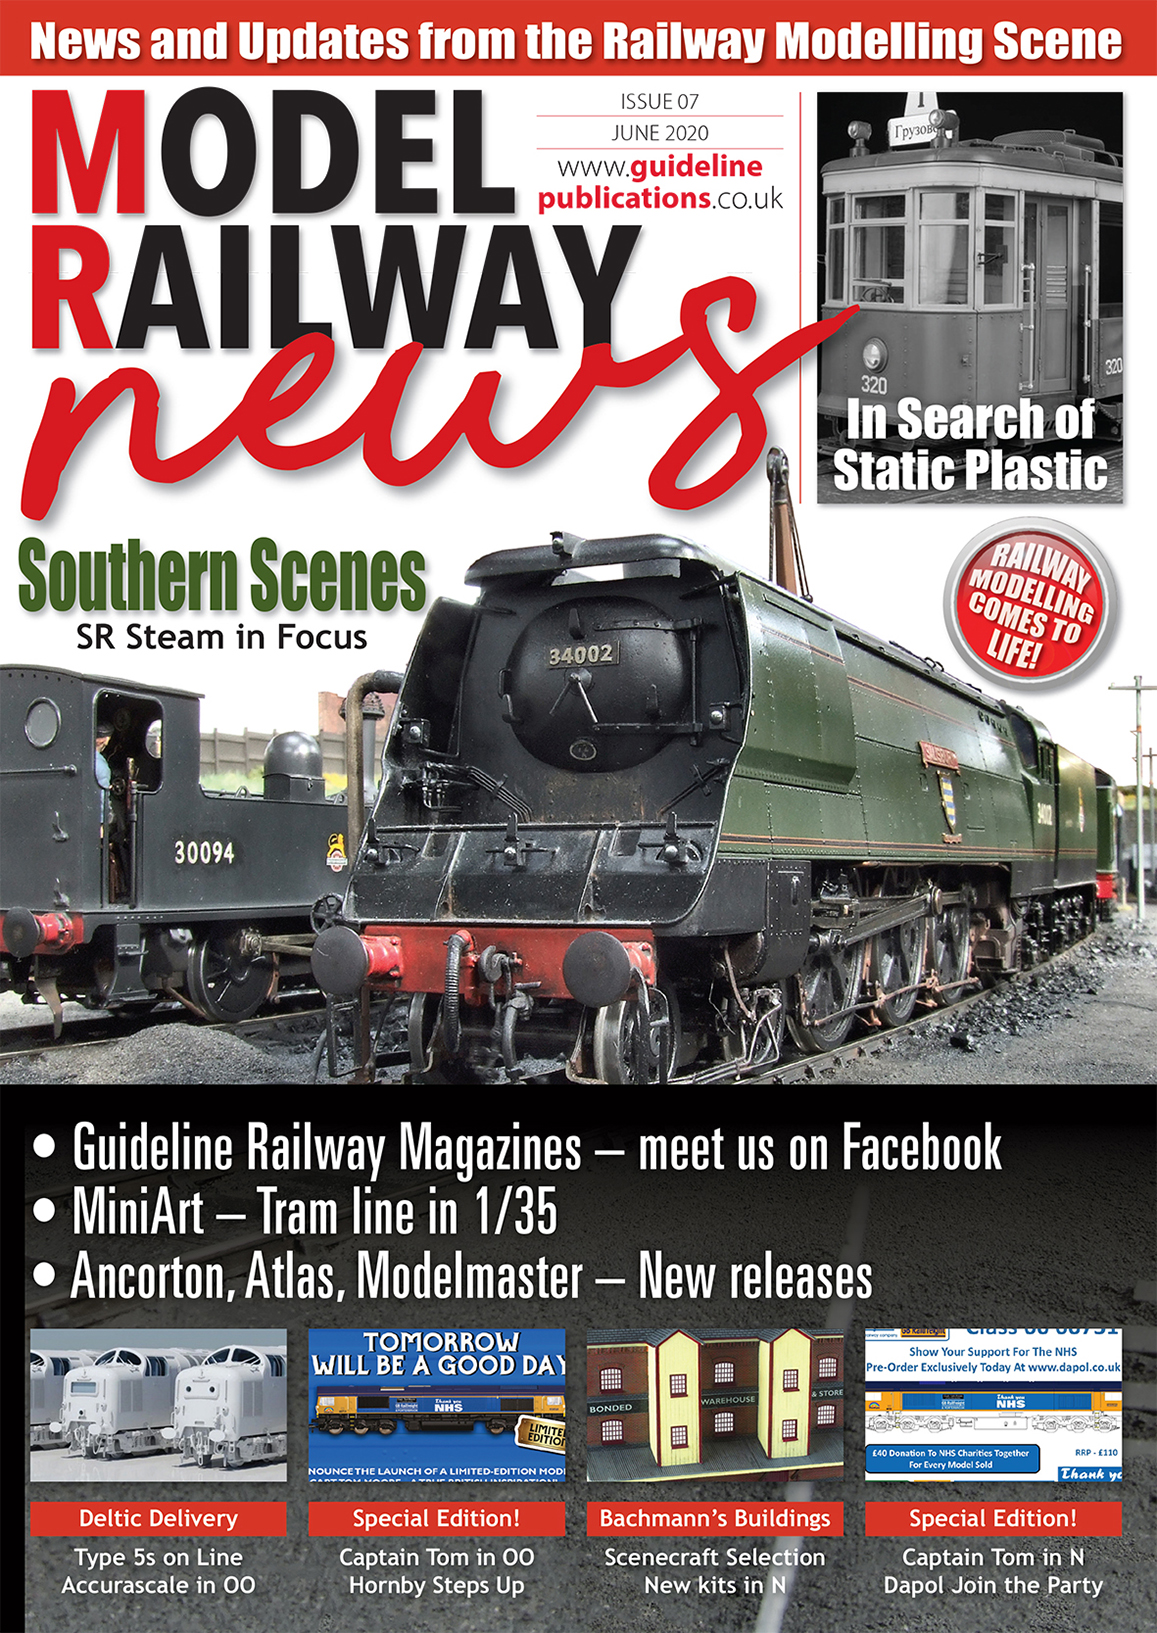 Guideline Publications Model Railway News issue 9 FREE DIGITAL ISSUE